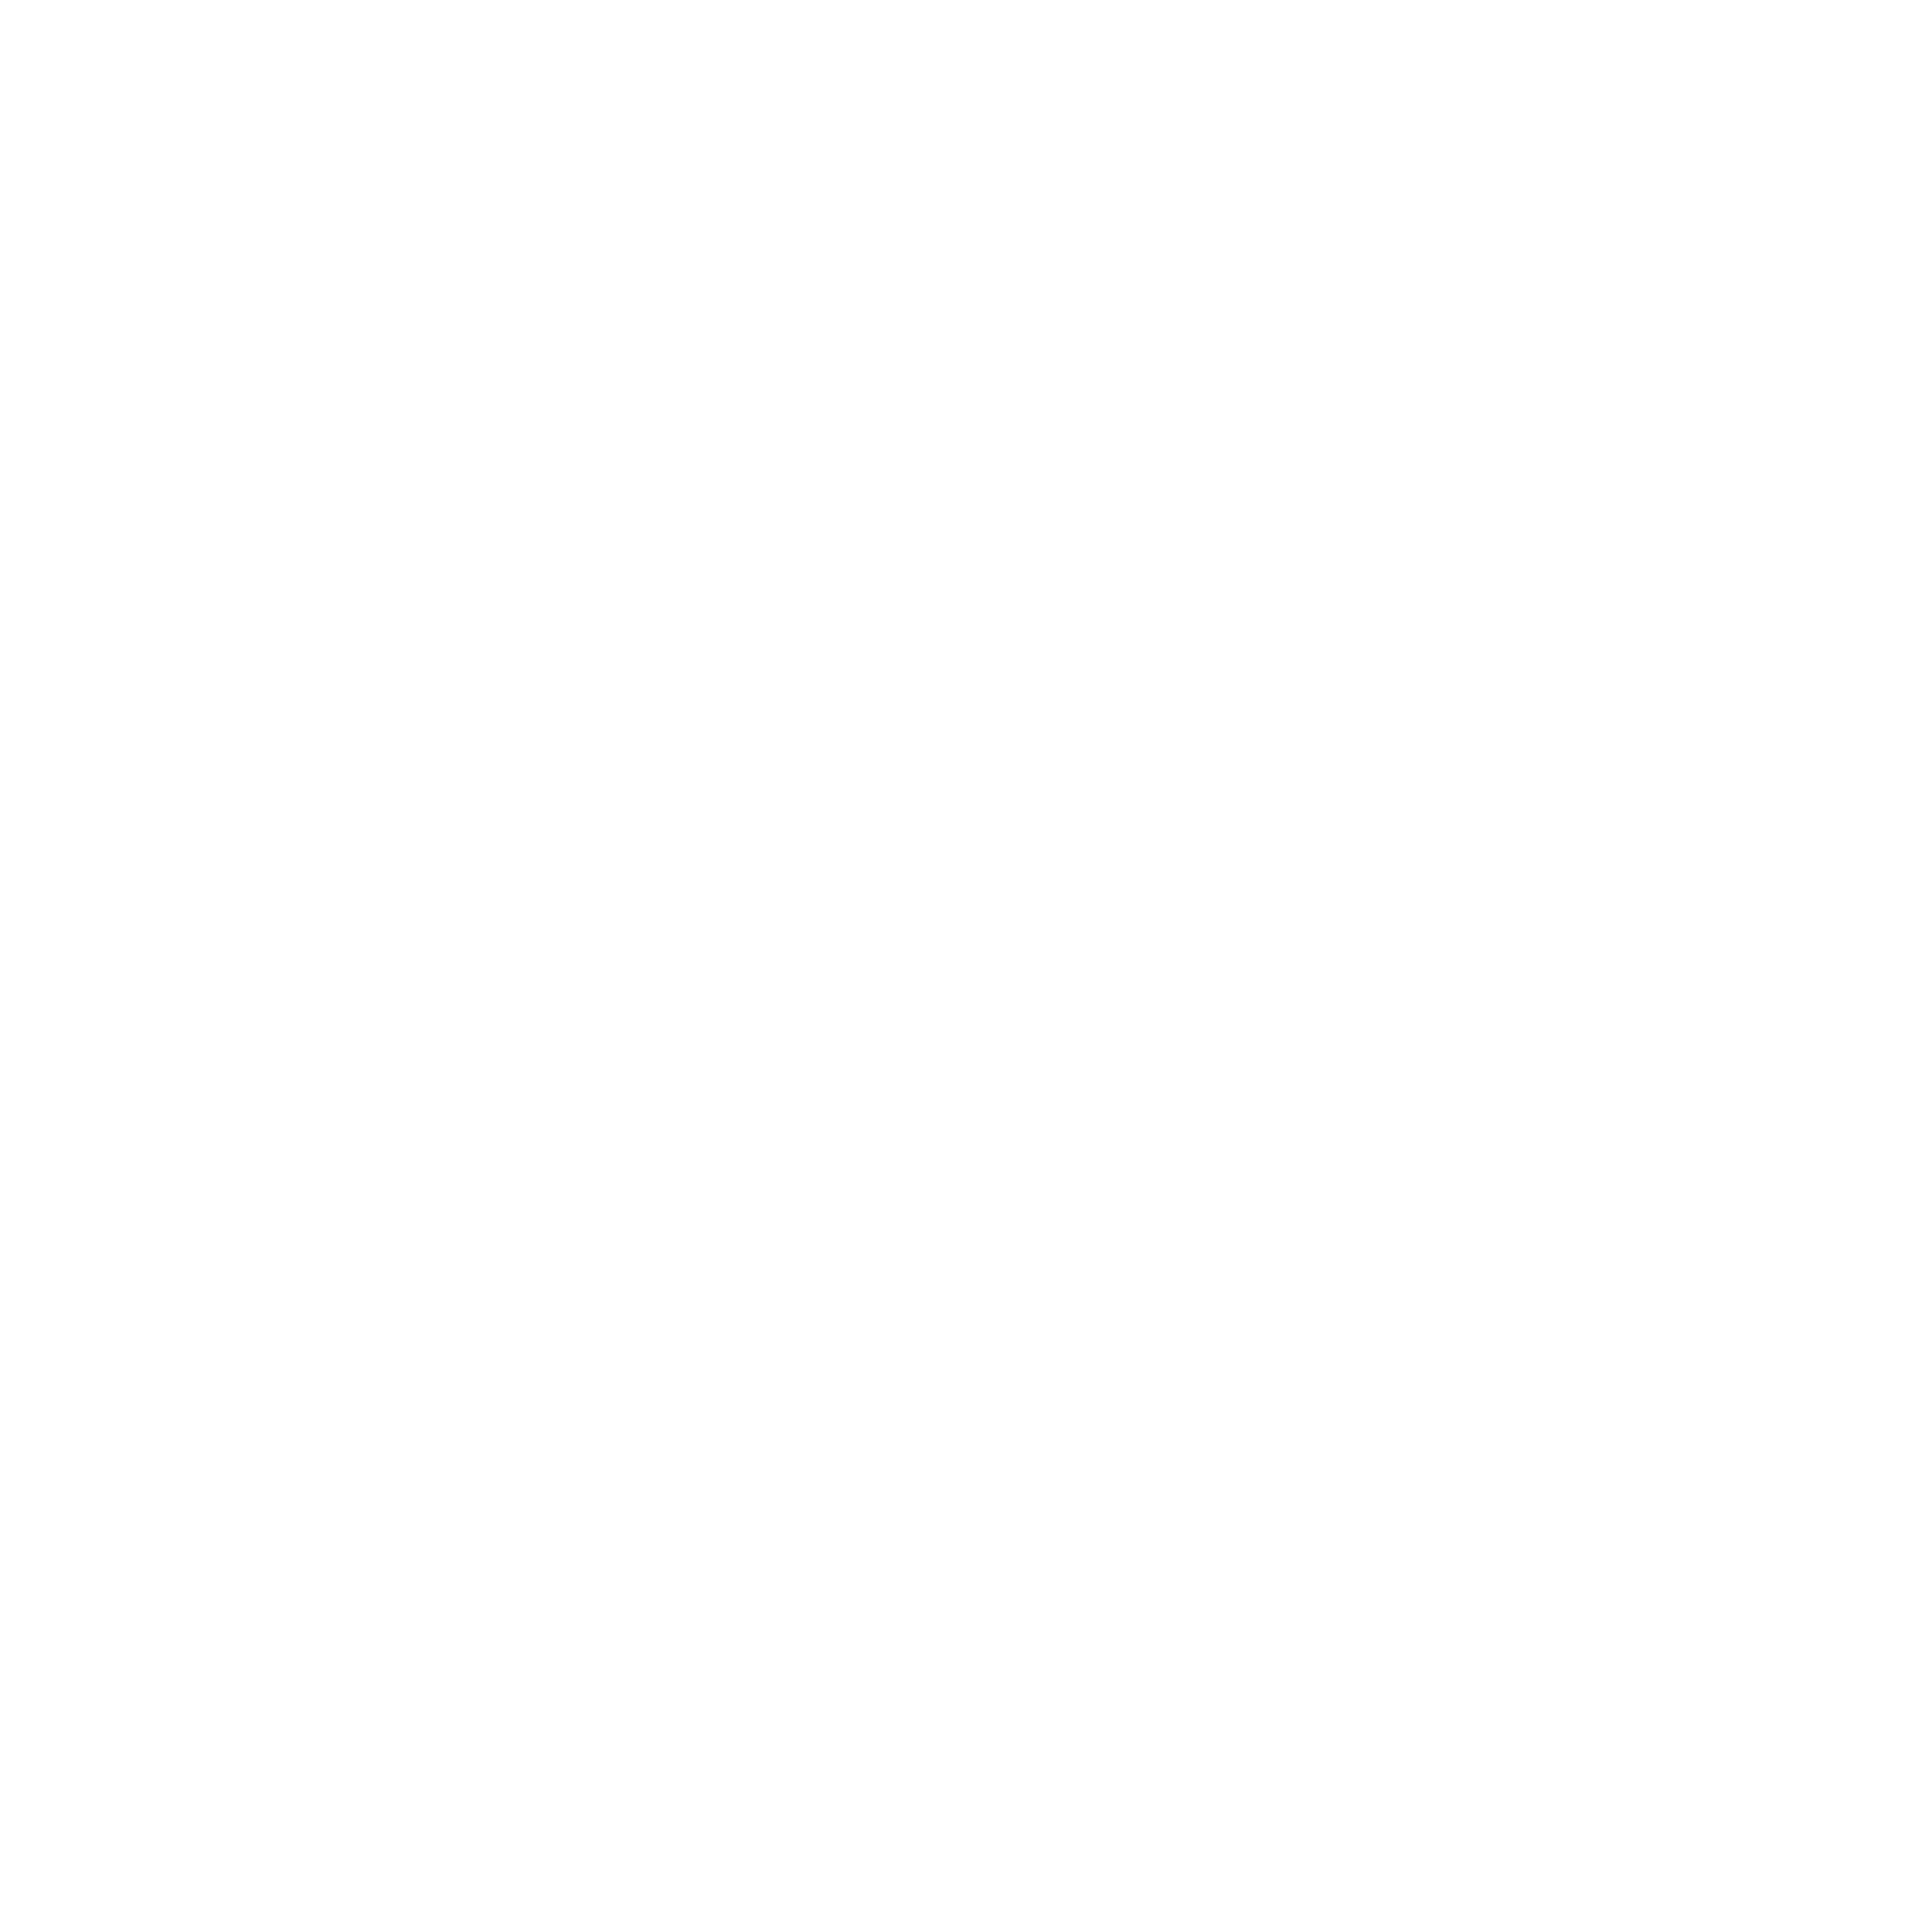 Federation of Maine Dog Clubs